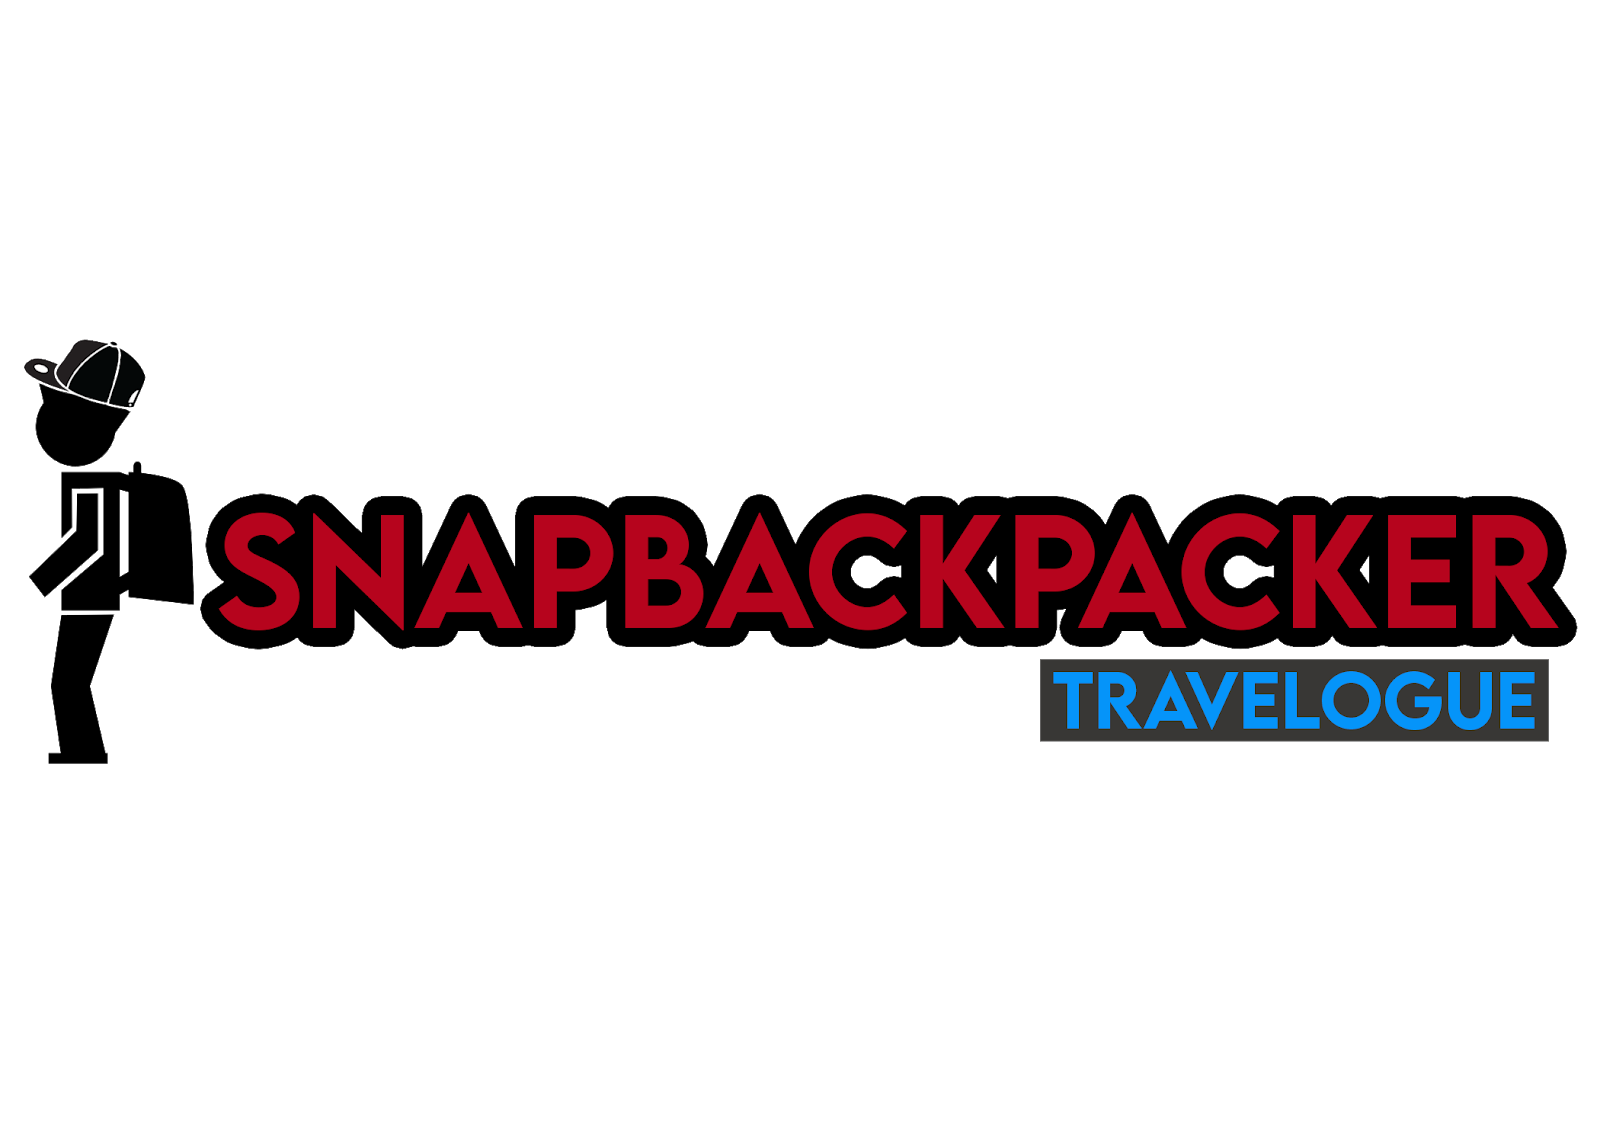 Snapbackpacker Travelogue